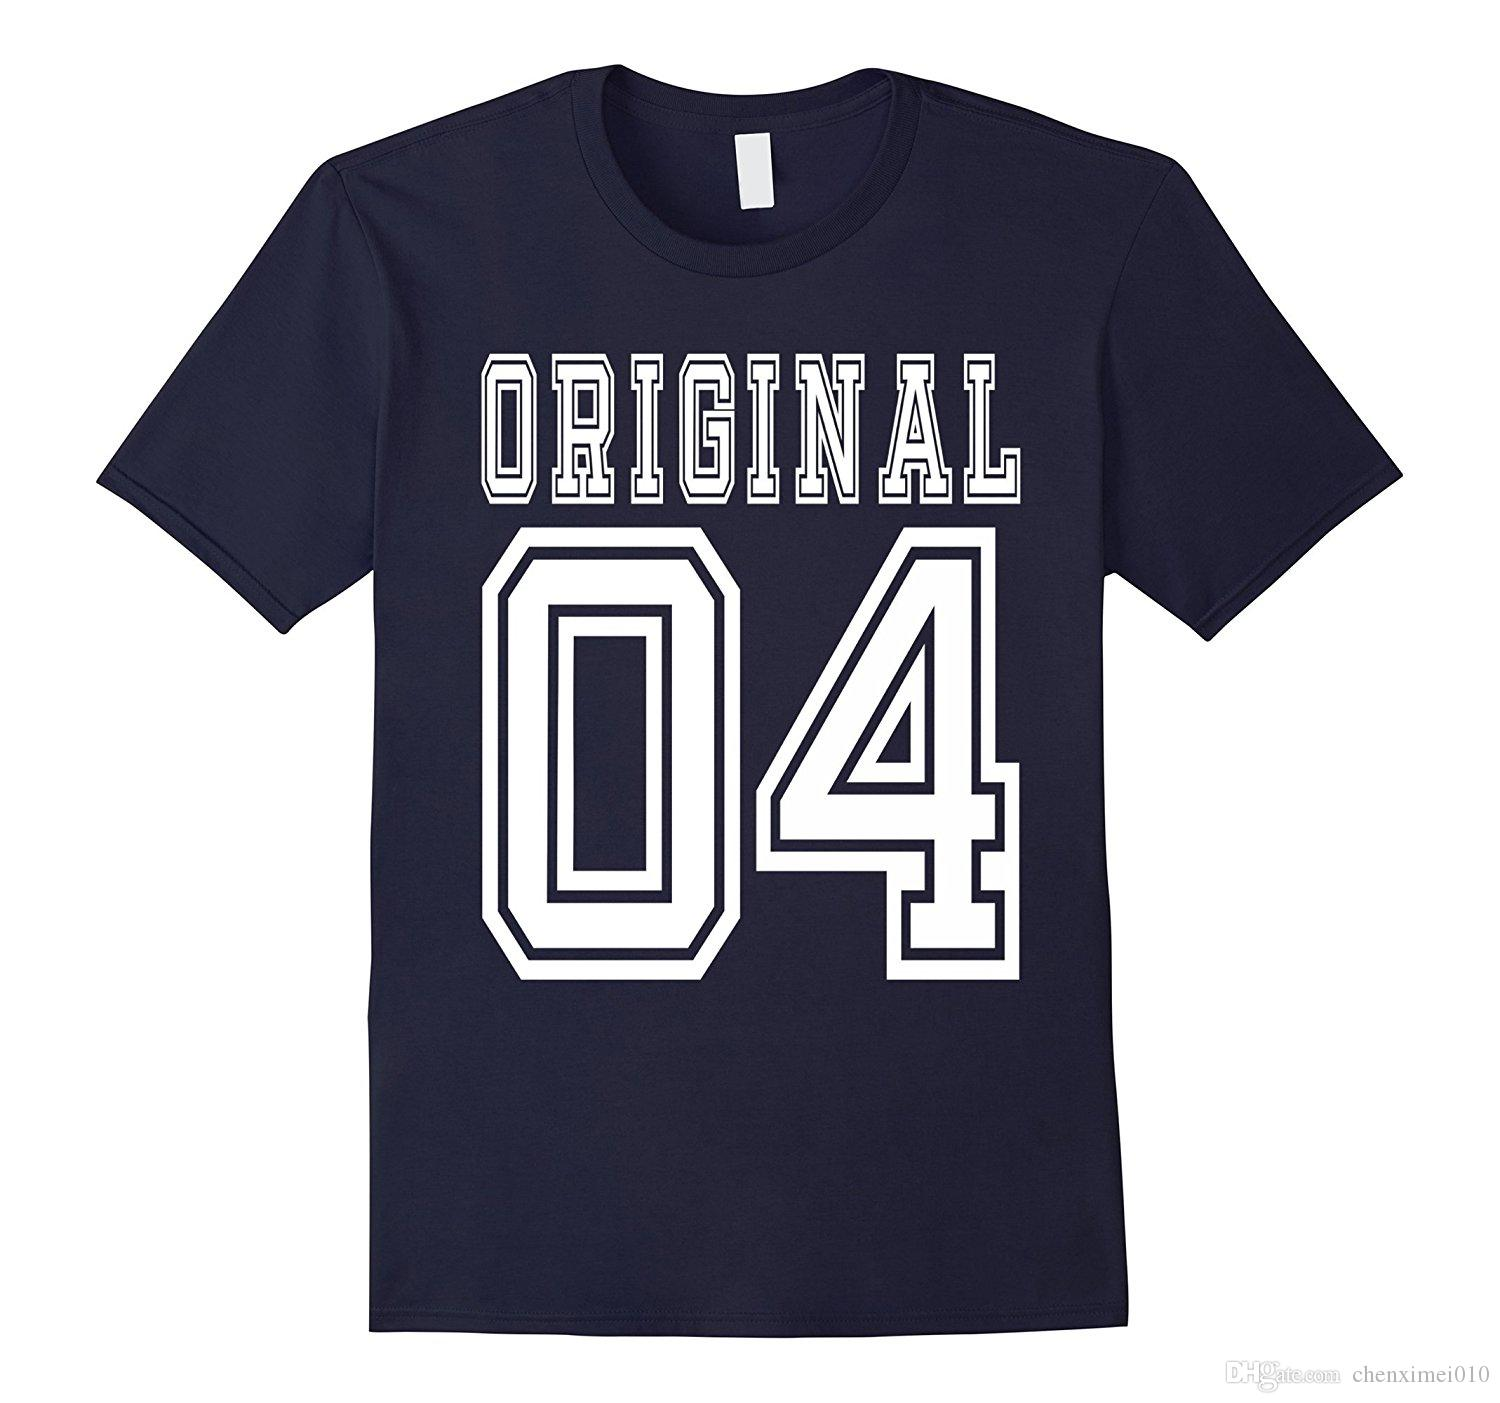 2004 T Shirt 13th Birthday Gift 13 Year Old Boy Girl B Day Buy Shirts Online Funny Tee From Chenximei010 1421